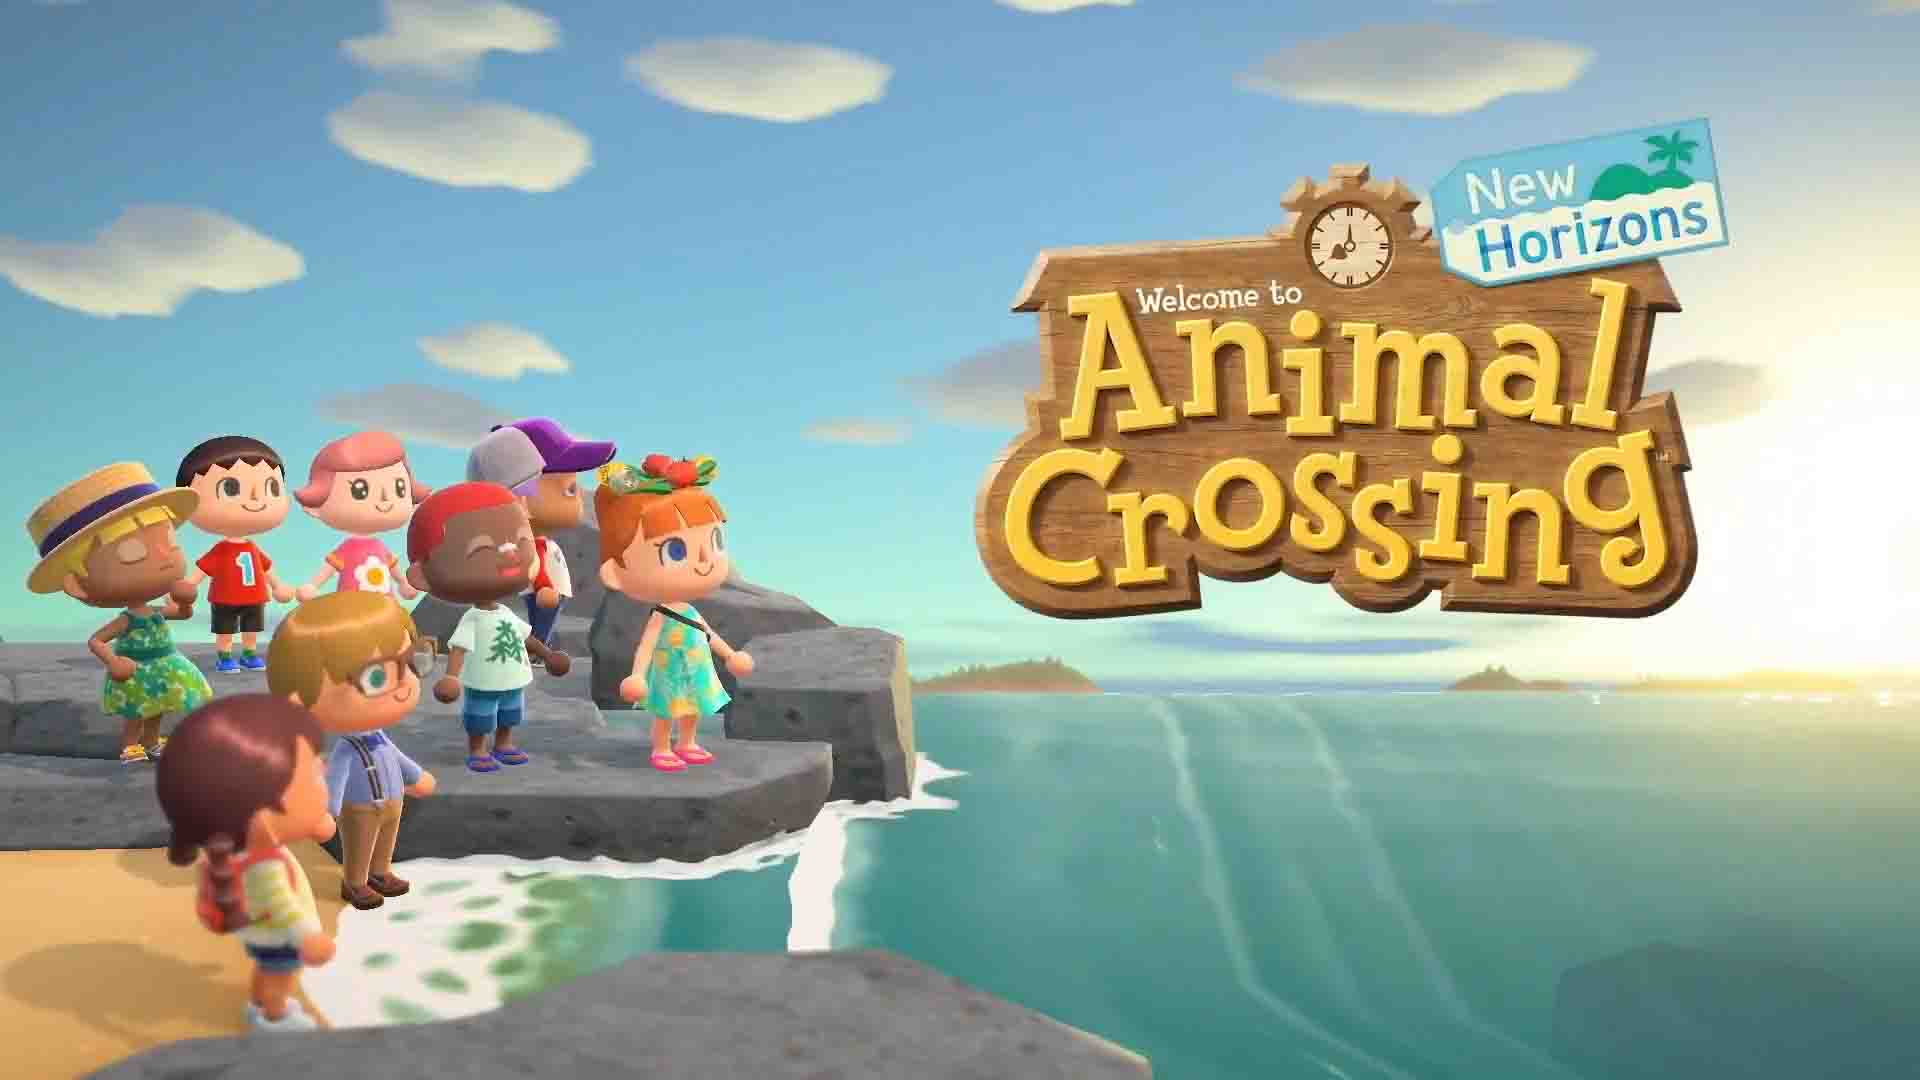 Animal Crossing New Horizons Same Music Loop and other Audio Issues